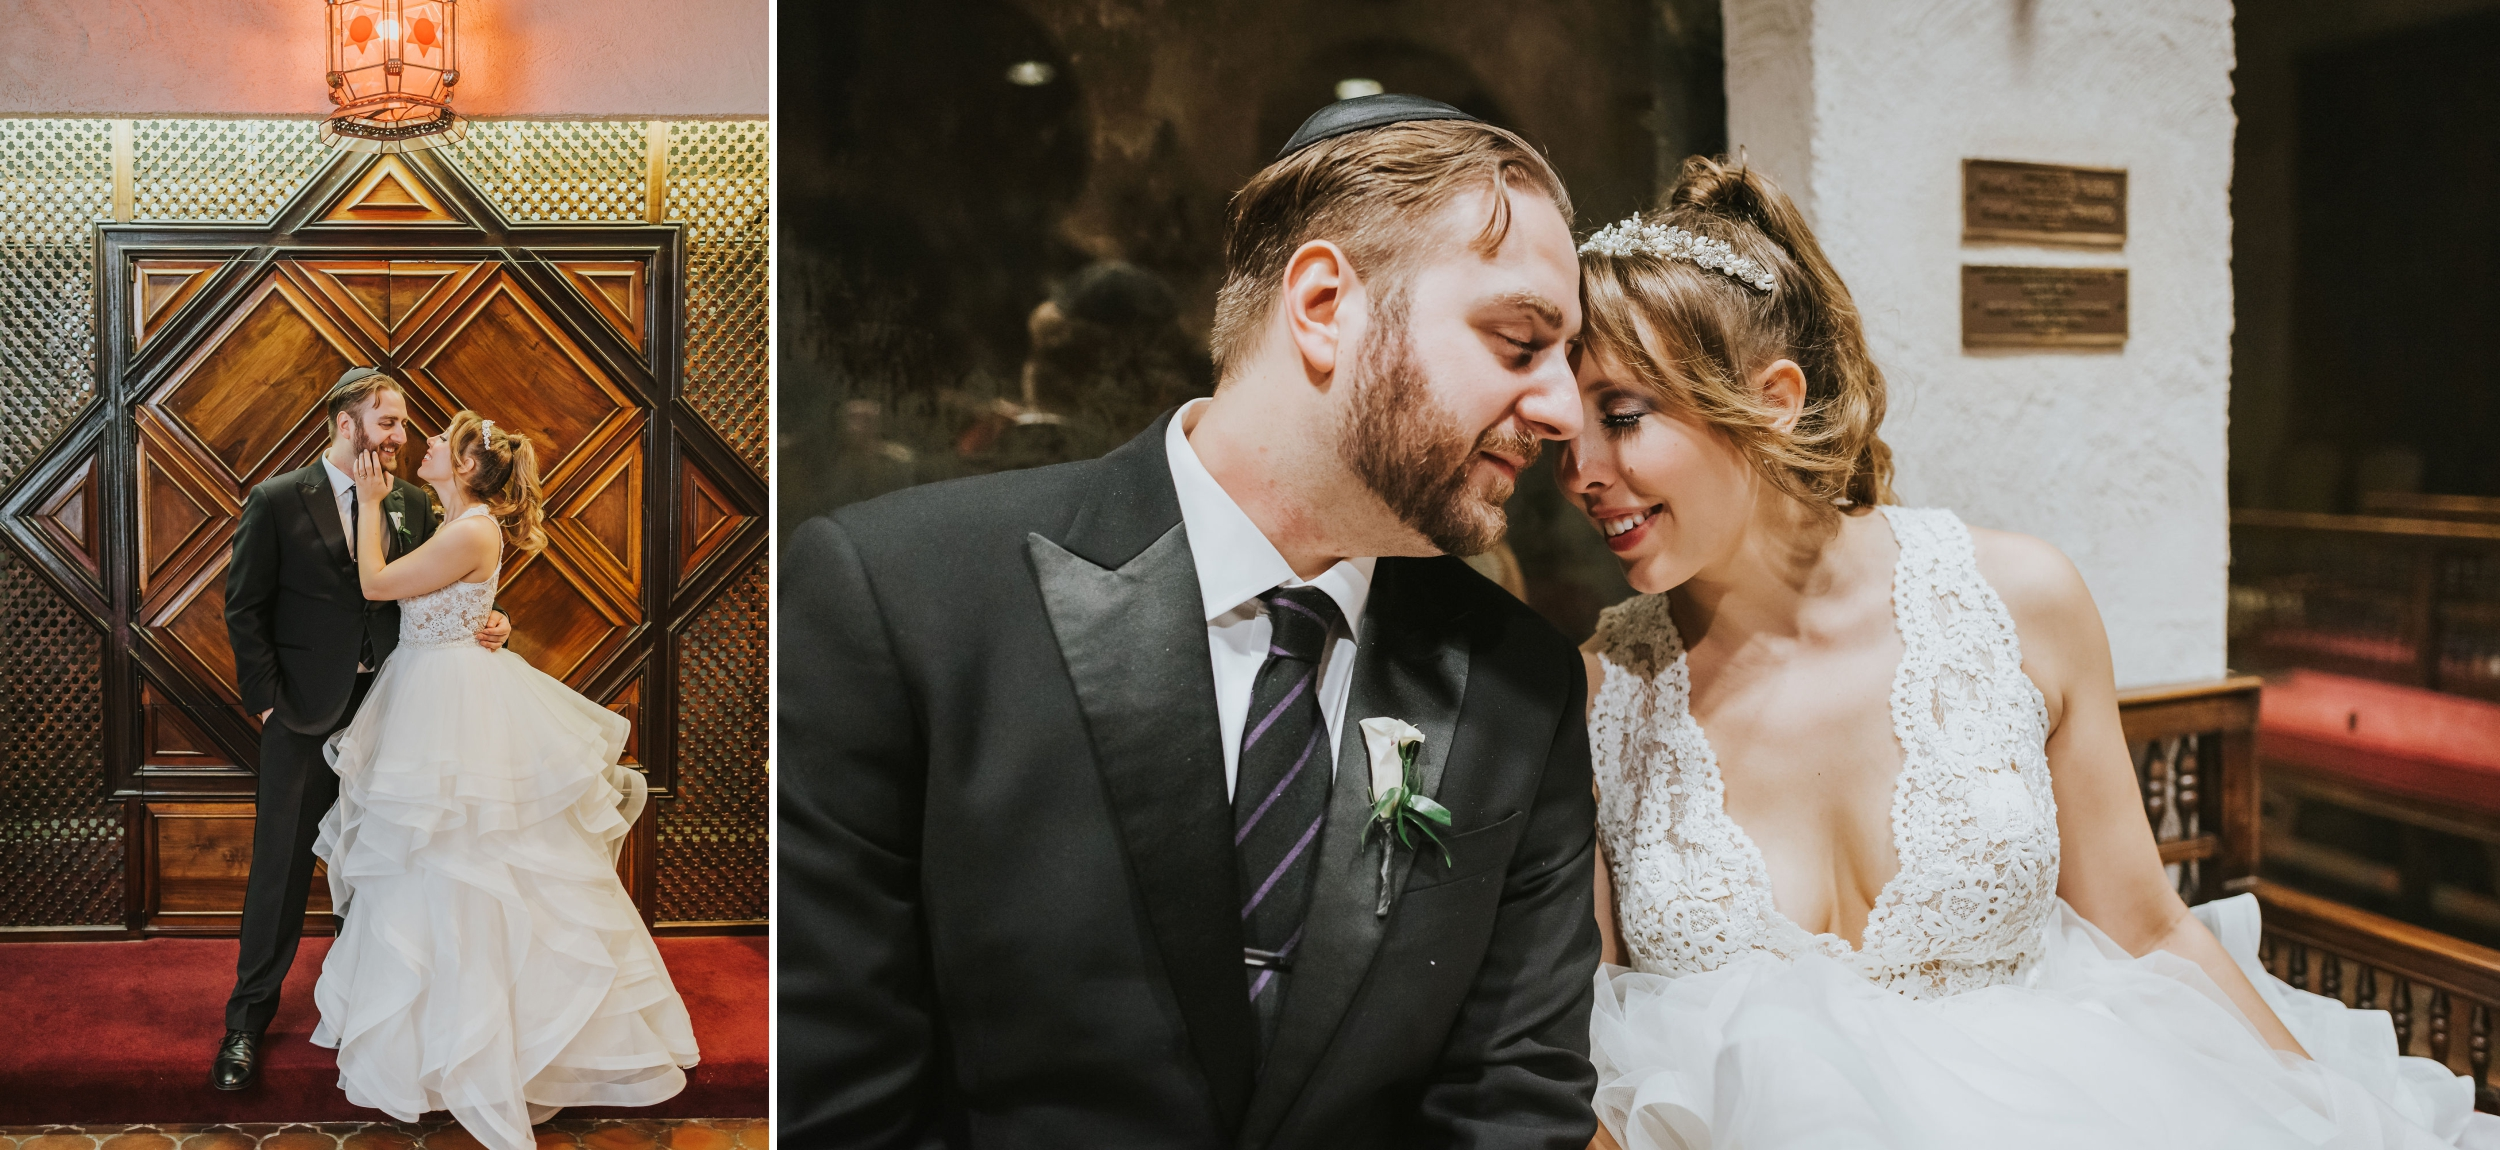 Ilyse and Max - The Sephardic Temple of Cedarhurst Wedding Long Island NYC 152.jpg